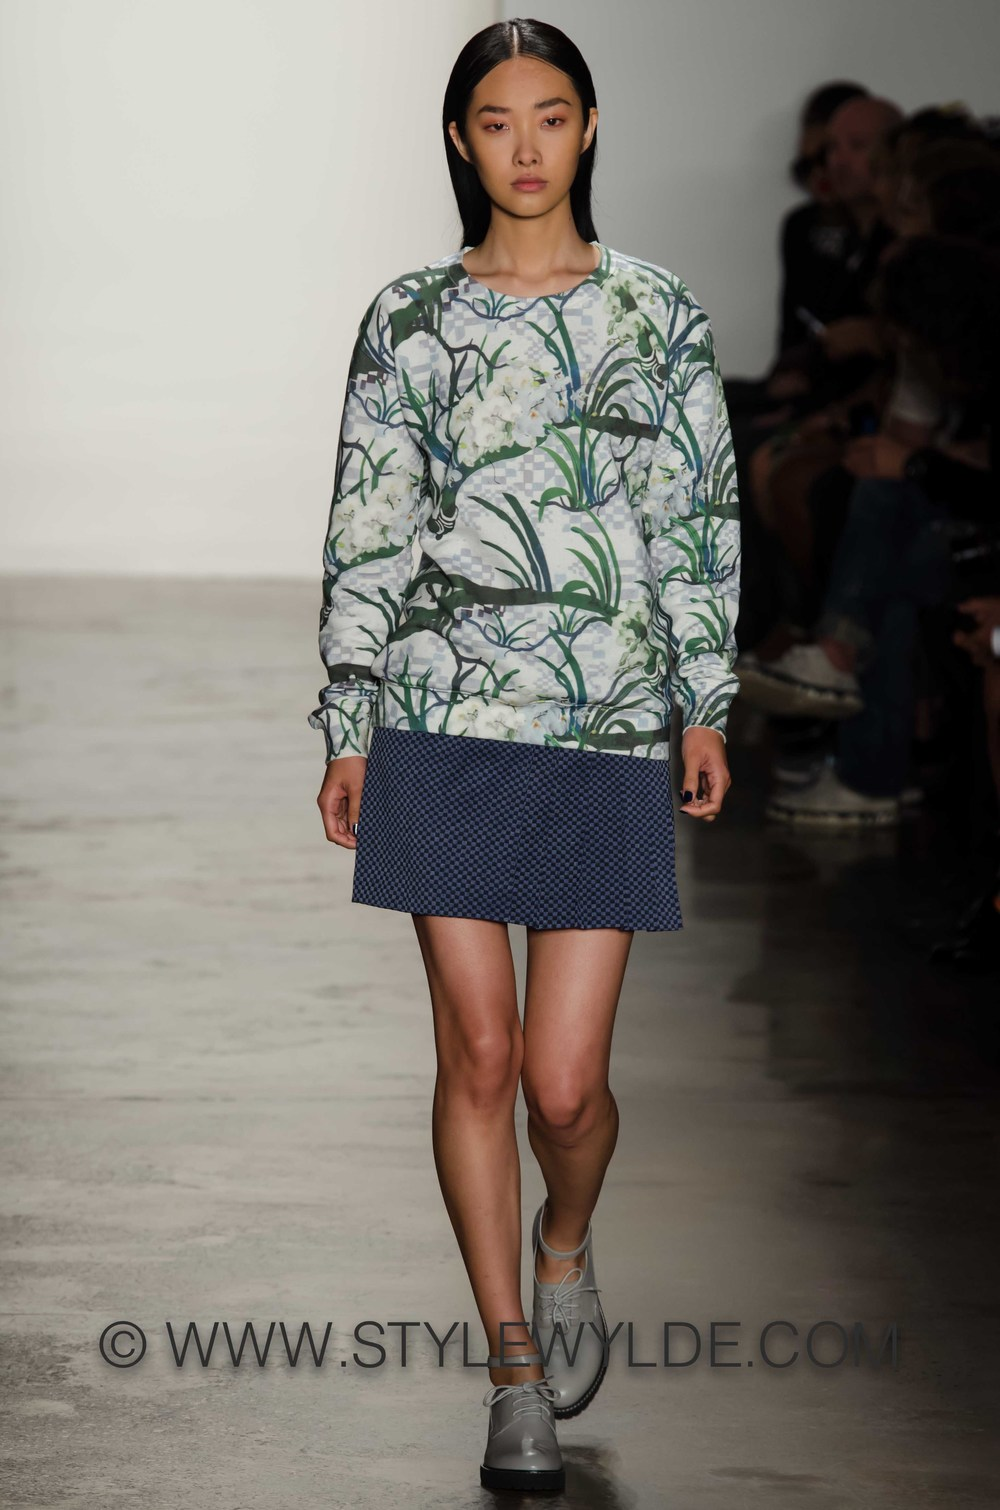 stylewylde_timo_weiland_gallery_ss2014-28.jpg